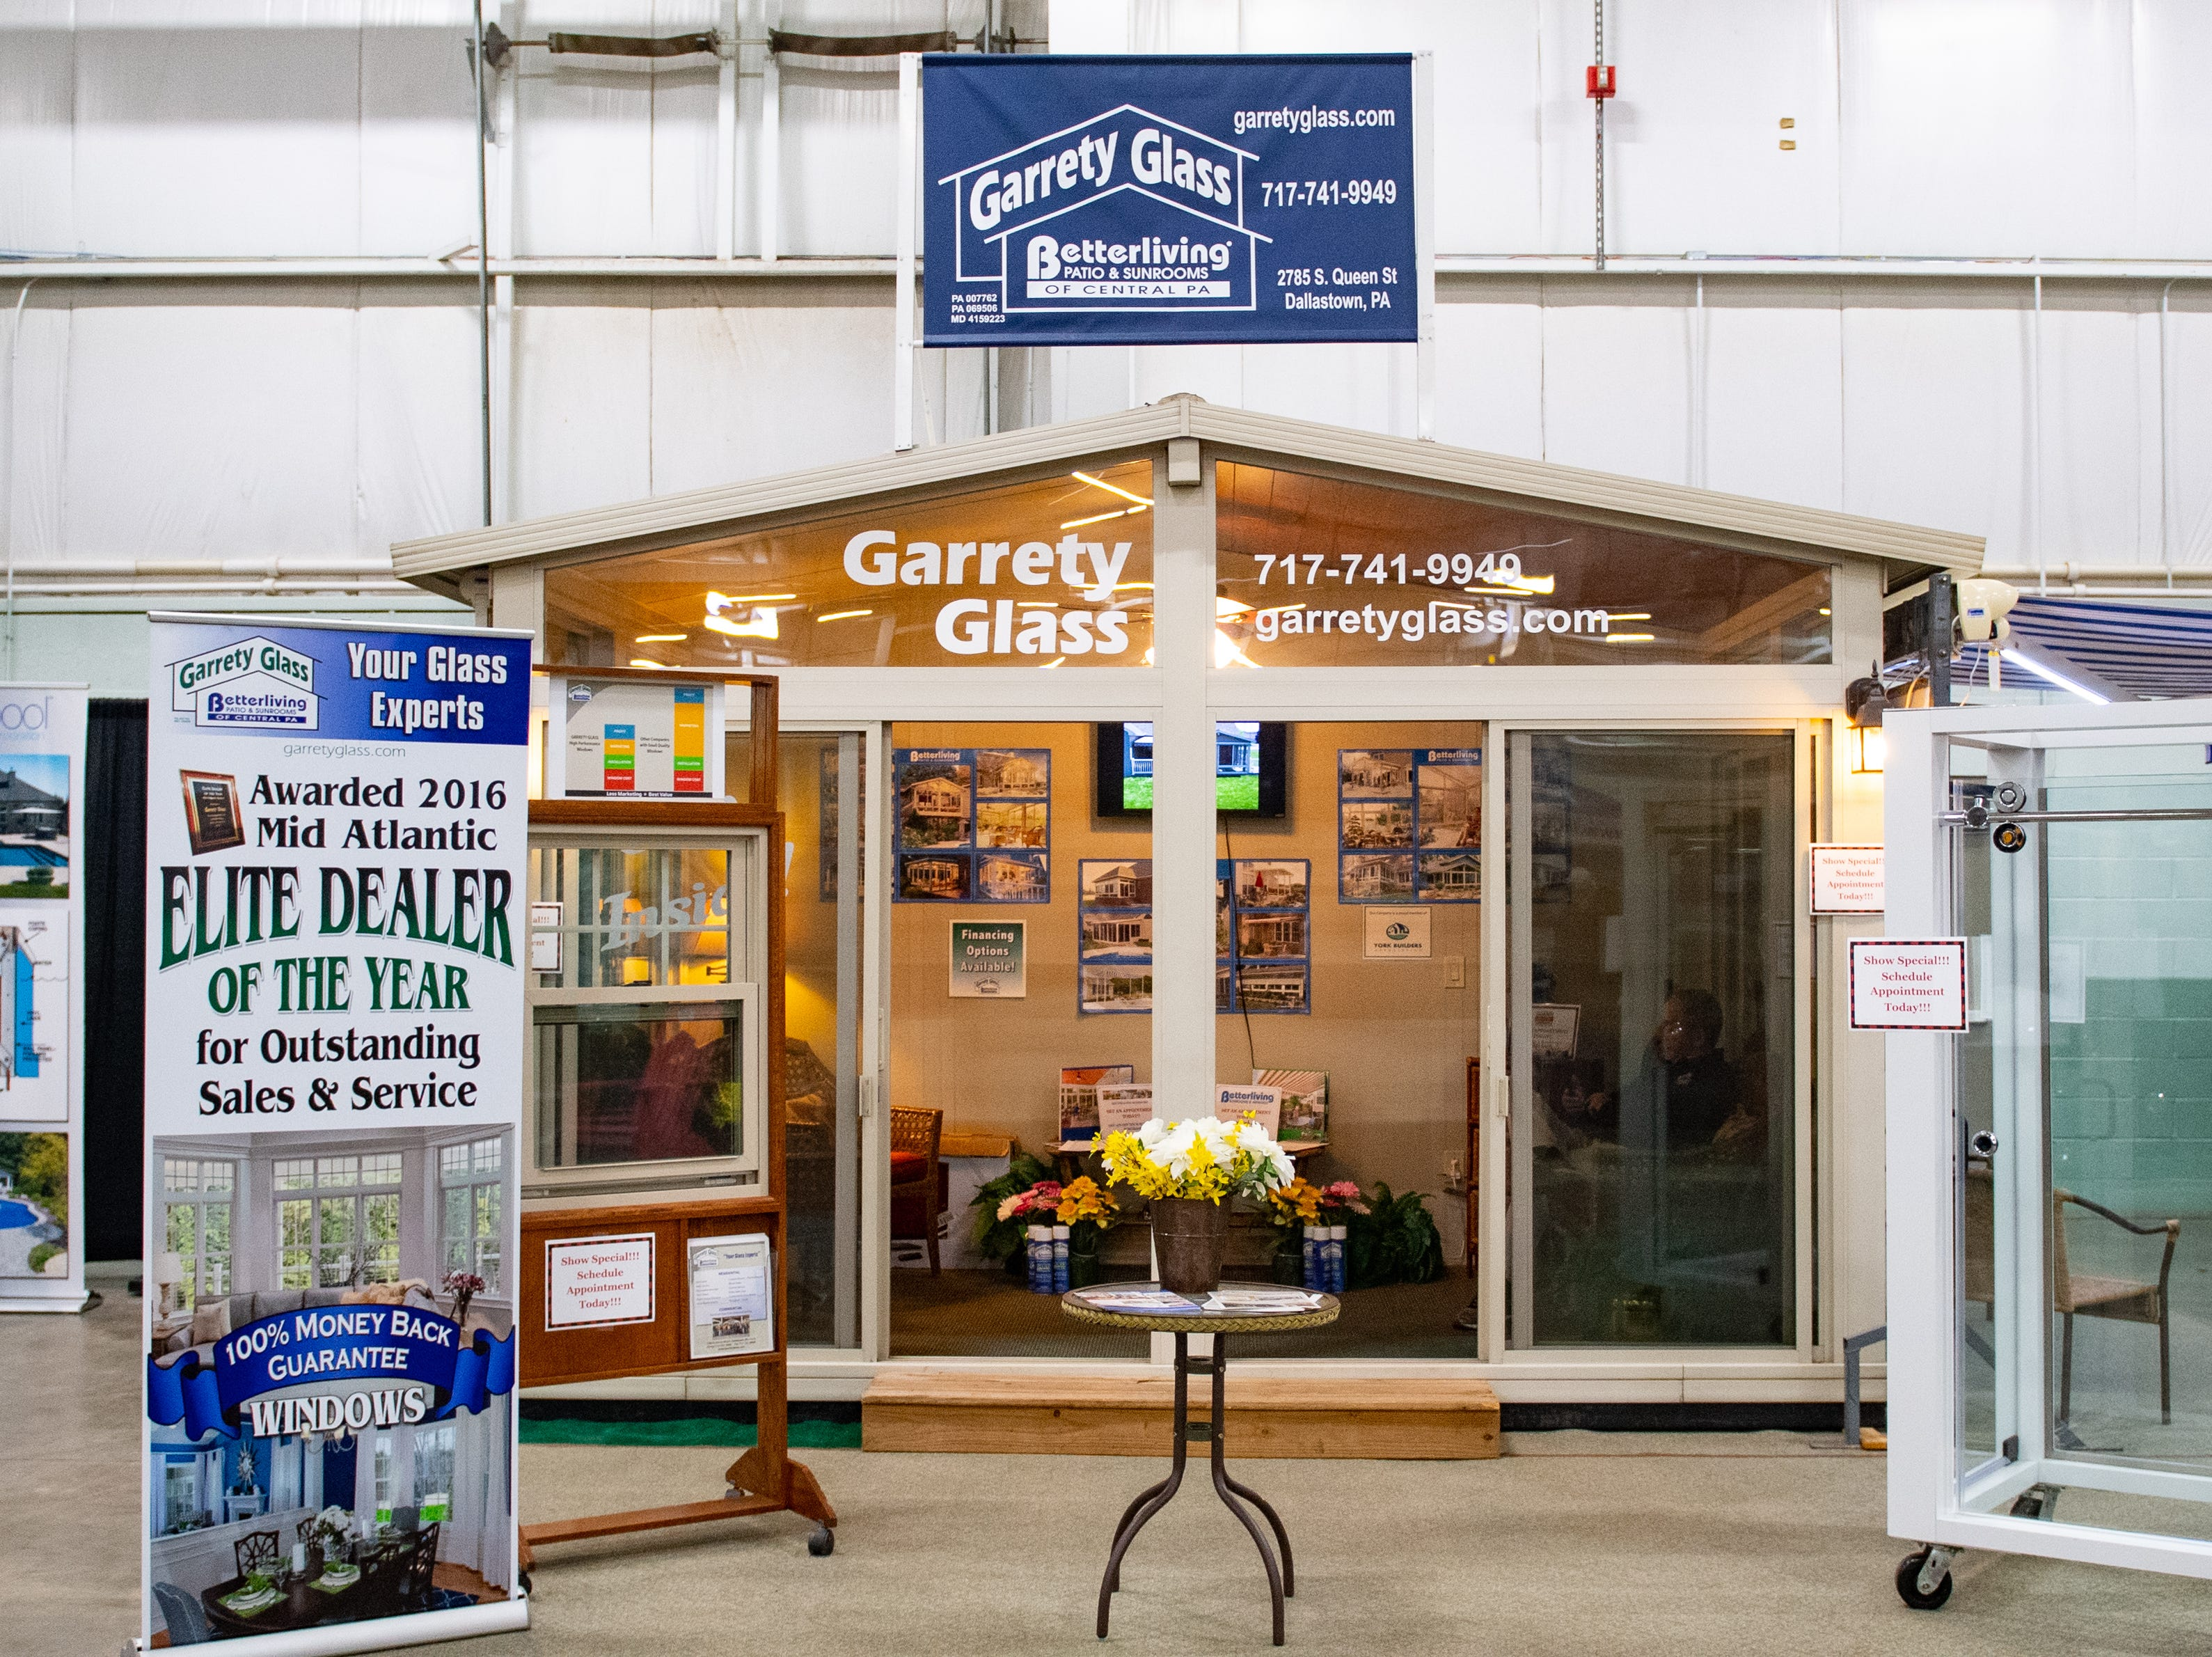 Garrety Glass has a booth at the 2019 Home & Garden Show, February 8, 2019.